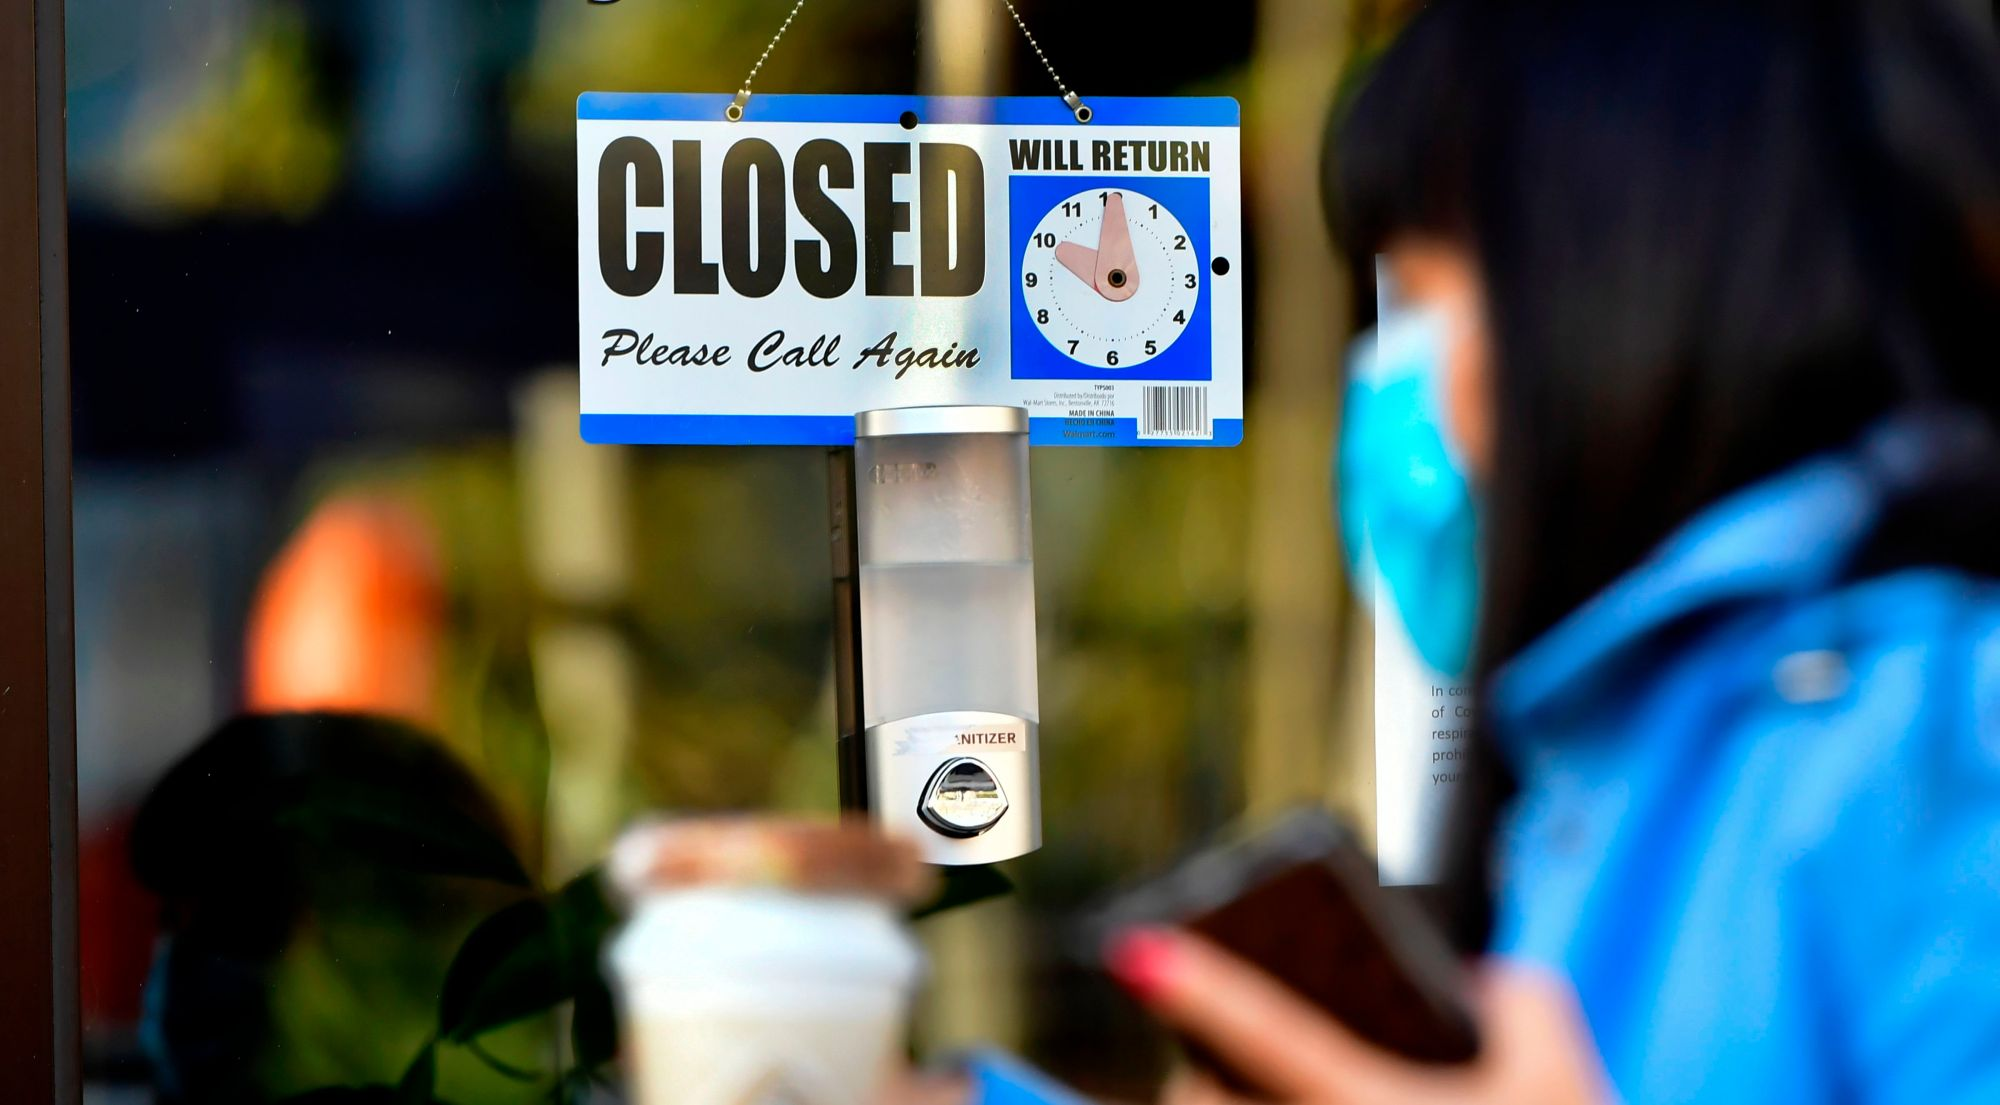 A pedestrian wearing her facemask and holding a cup of coffee walks past a closed sign hanging on the door of a small business in Los Angeles on Nov. 30, 2020. (Frederic J. Brown / AFP / Getty Images)